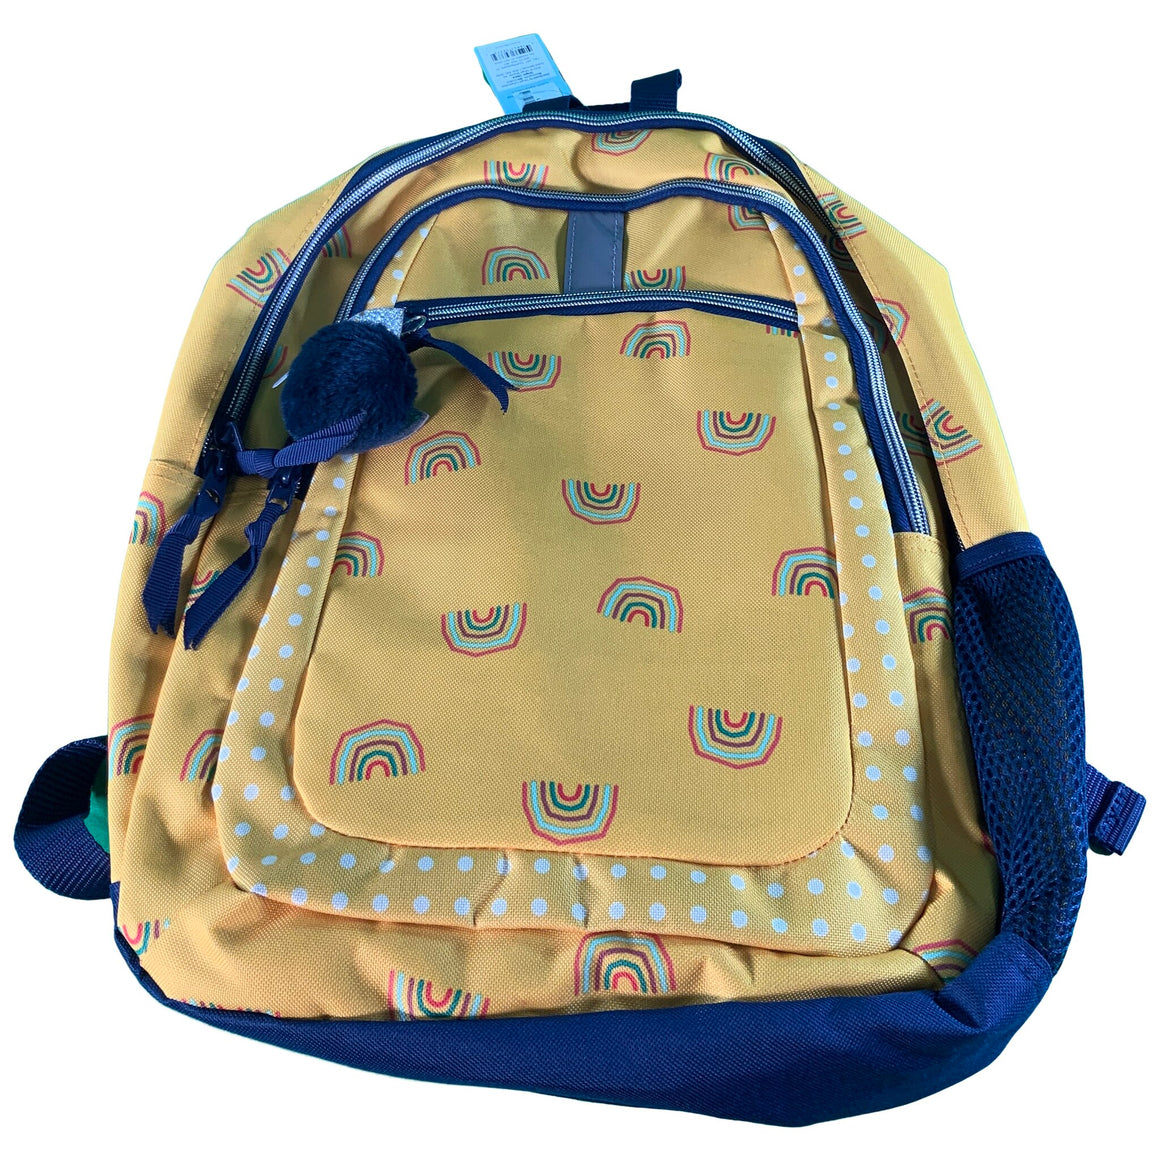 "17"" Rainbow Print Kids' Backpack Yellow/Black - Cat & Jack™"